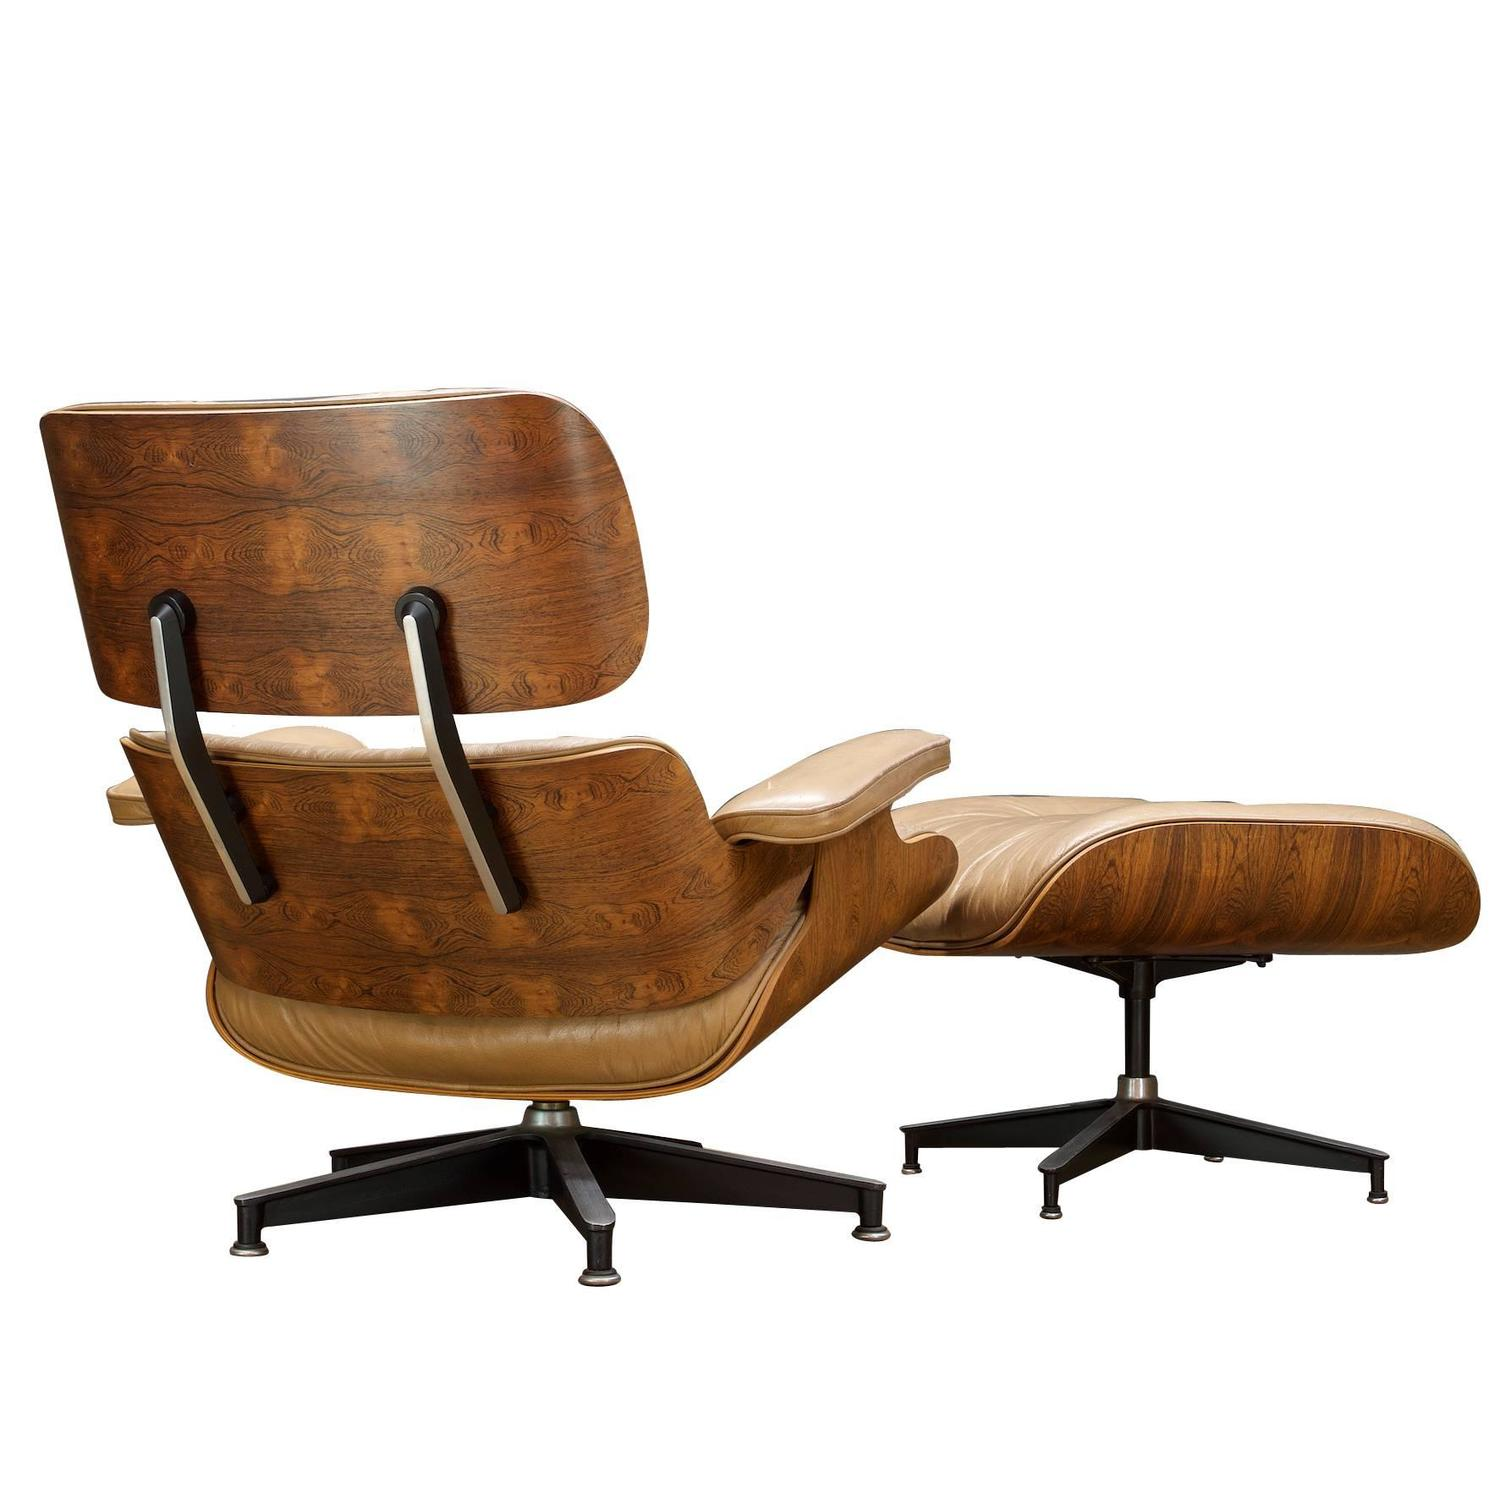 Eames 670 671 Brazilian Rosewood Lounge Chair and Ottoman For Sale at 1stdibs